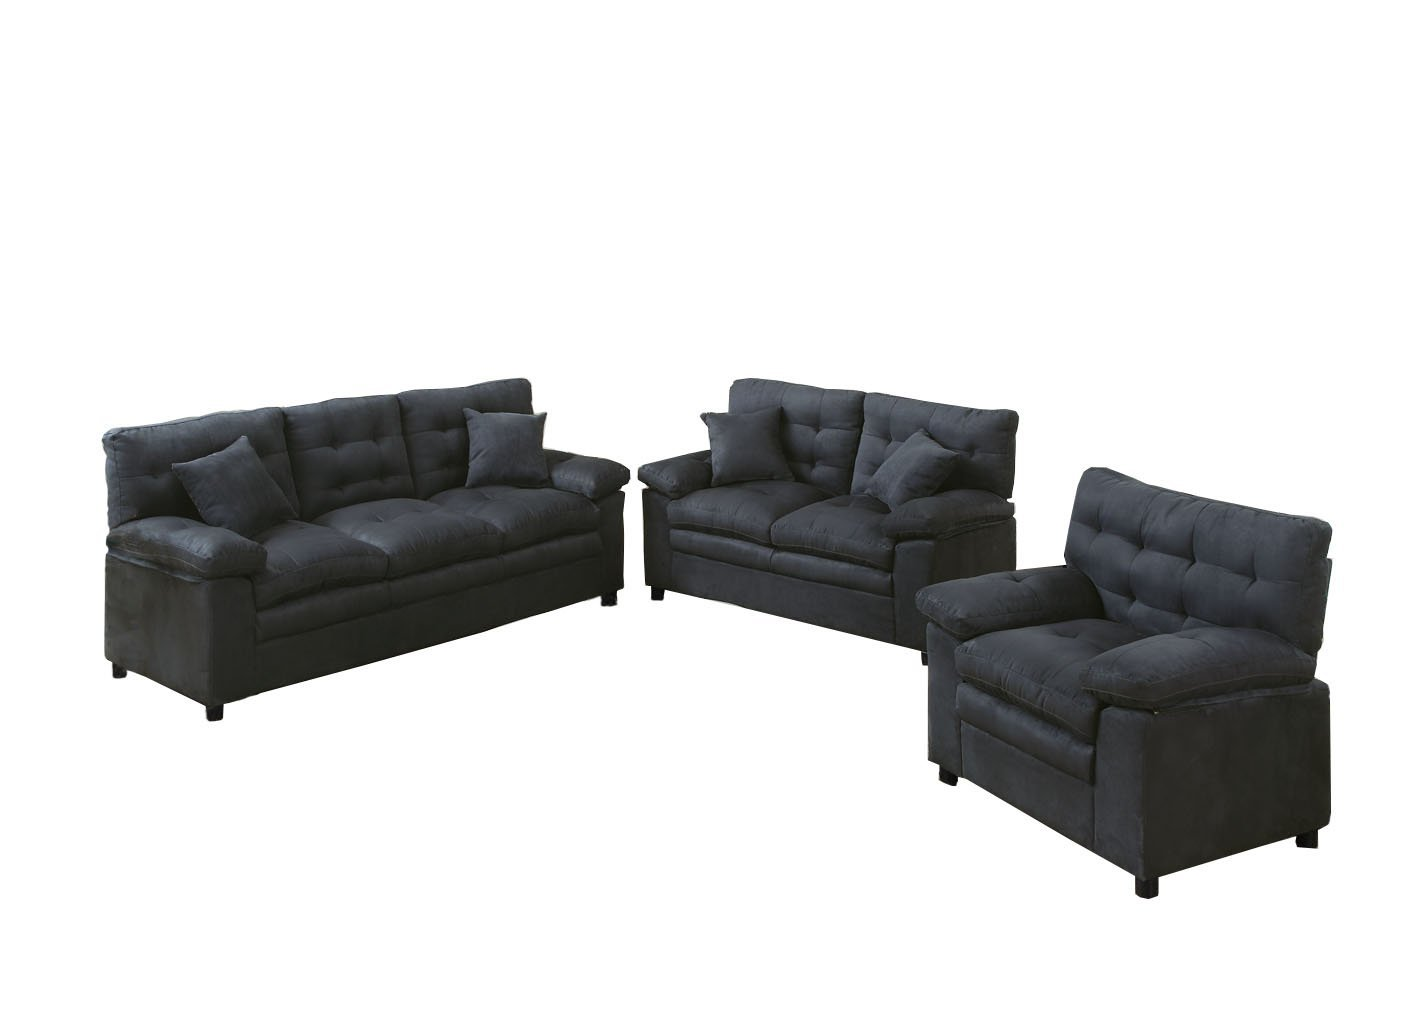 Poundex Bobkona Colona Mircosuede 3 Piece Sofa and Loveseat with Chair Set, Ash